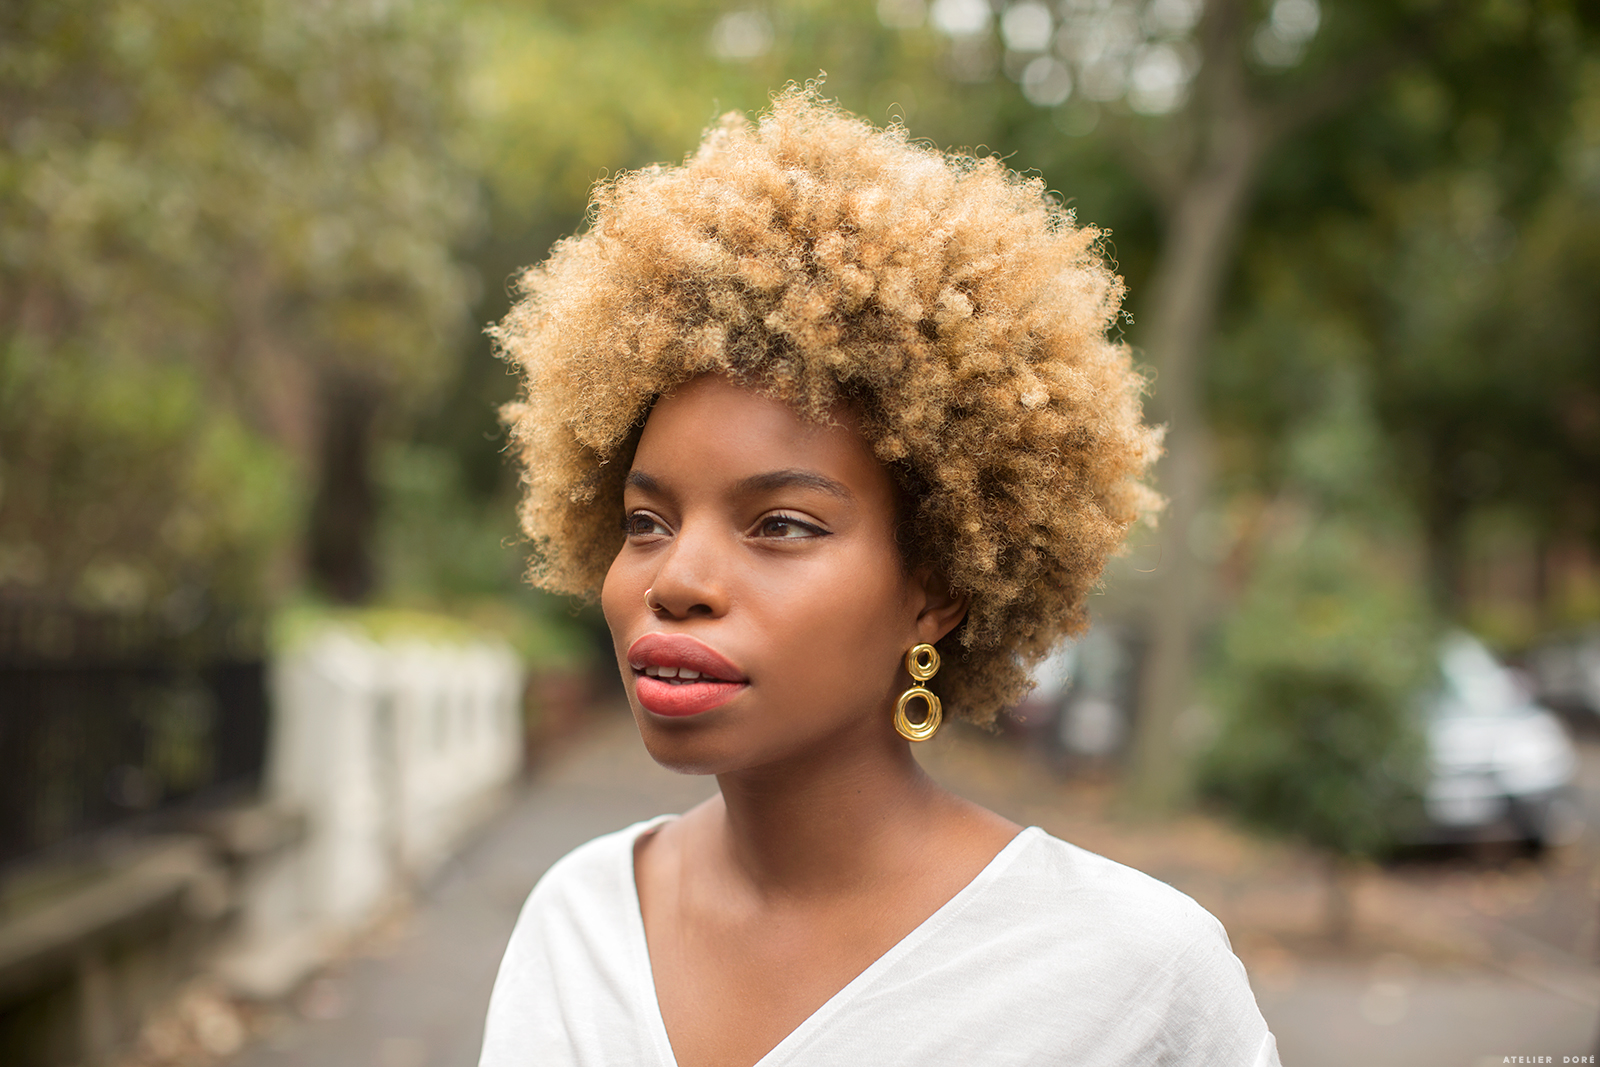 On Decriminalizing Black Hair